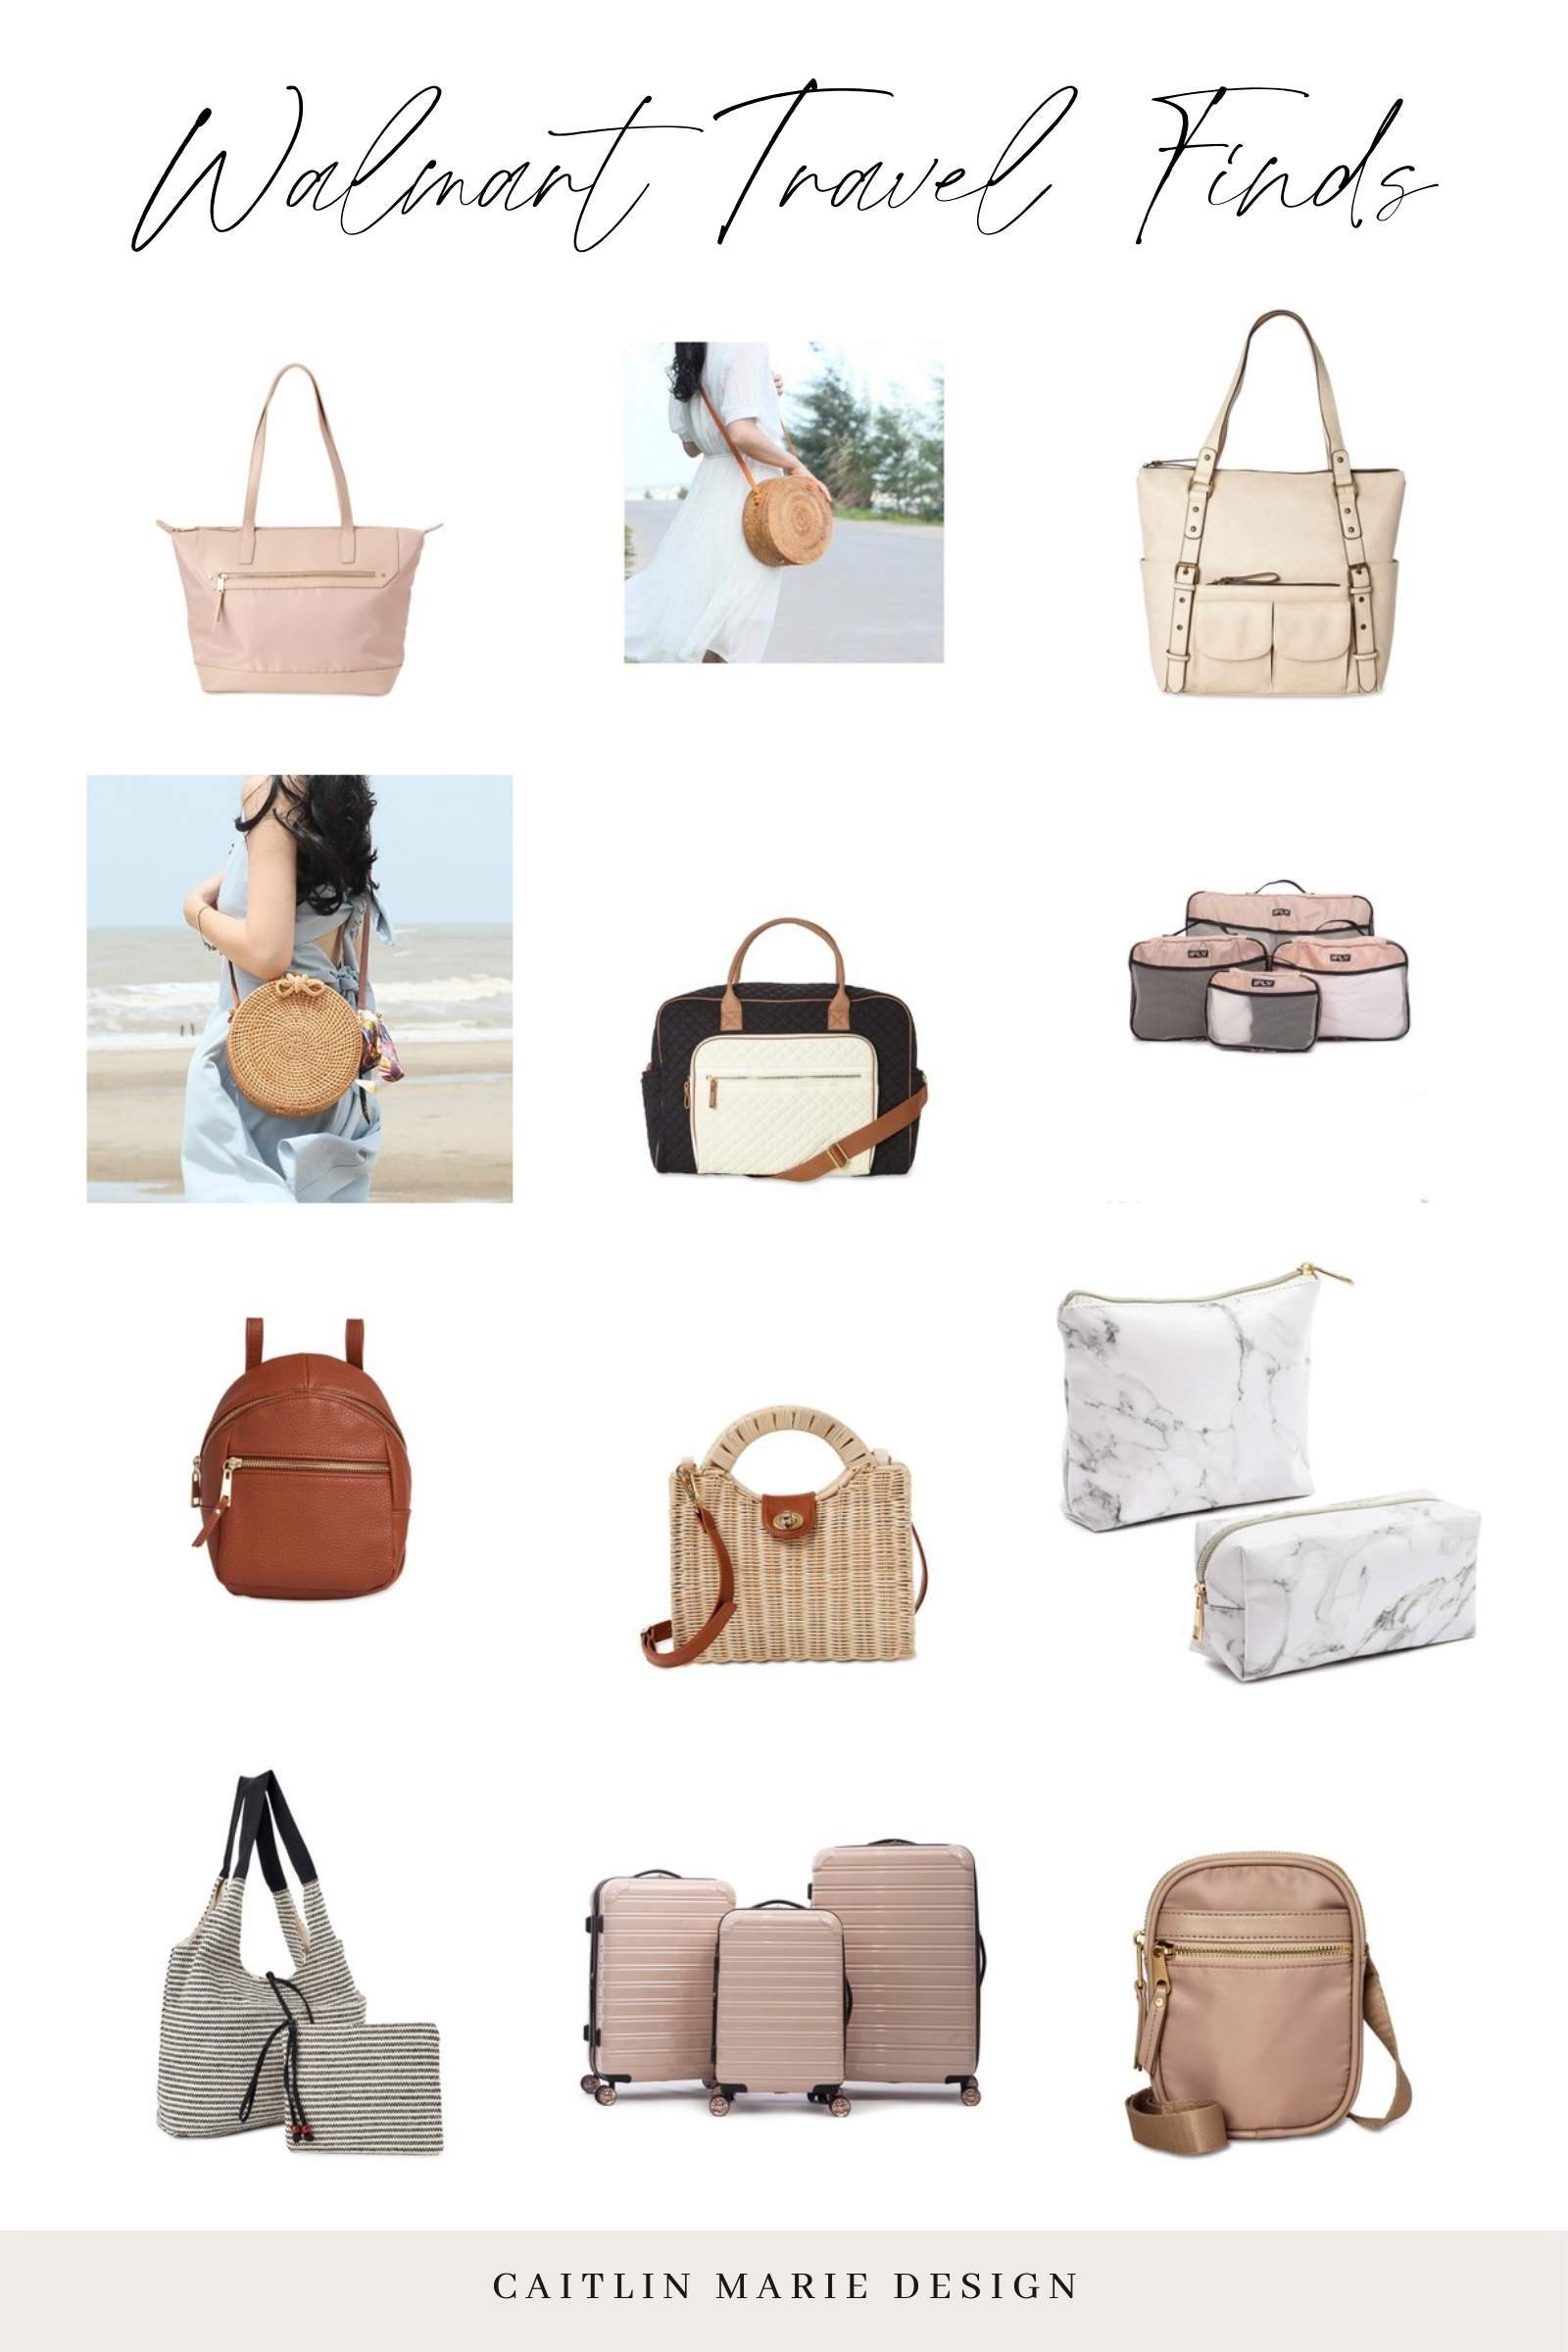 Walmart travel accessories - straw rattan bag, pink luggage, beach bag, makeup bag, leather backpack